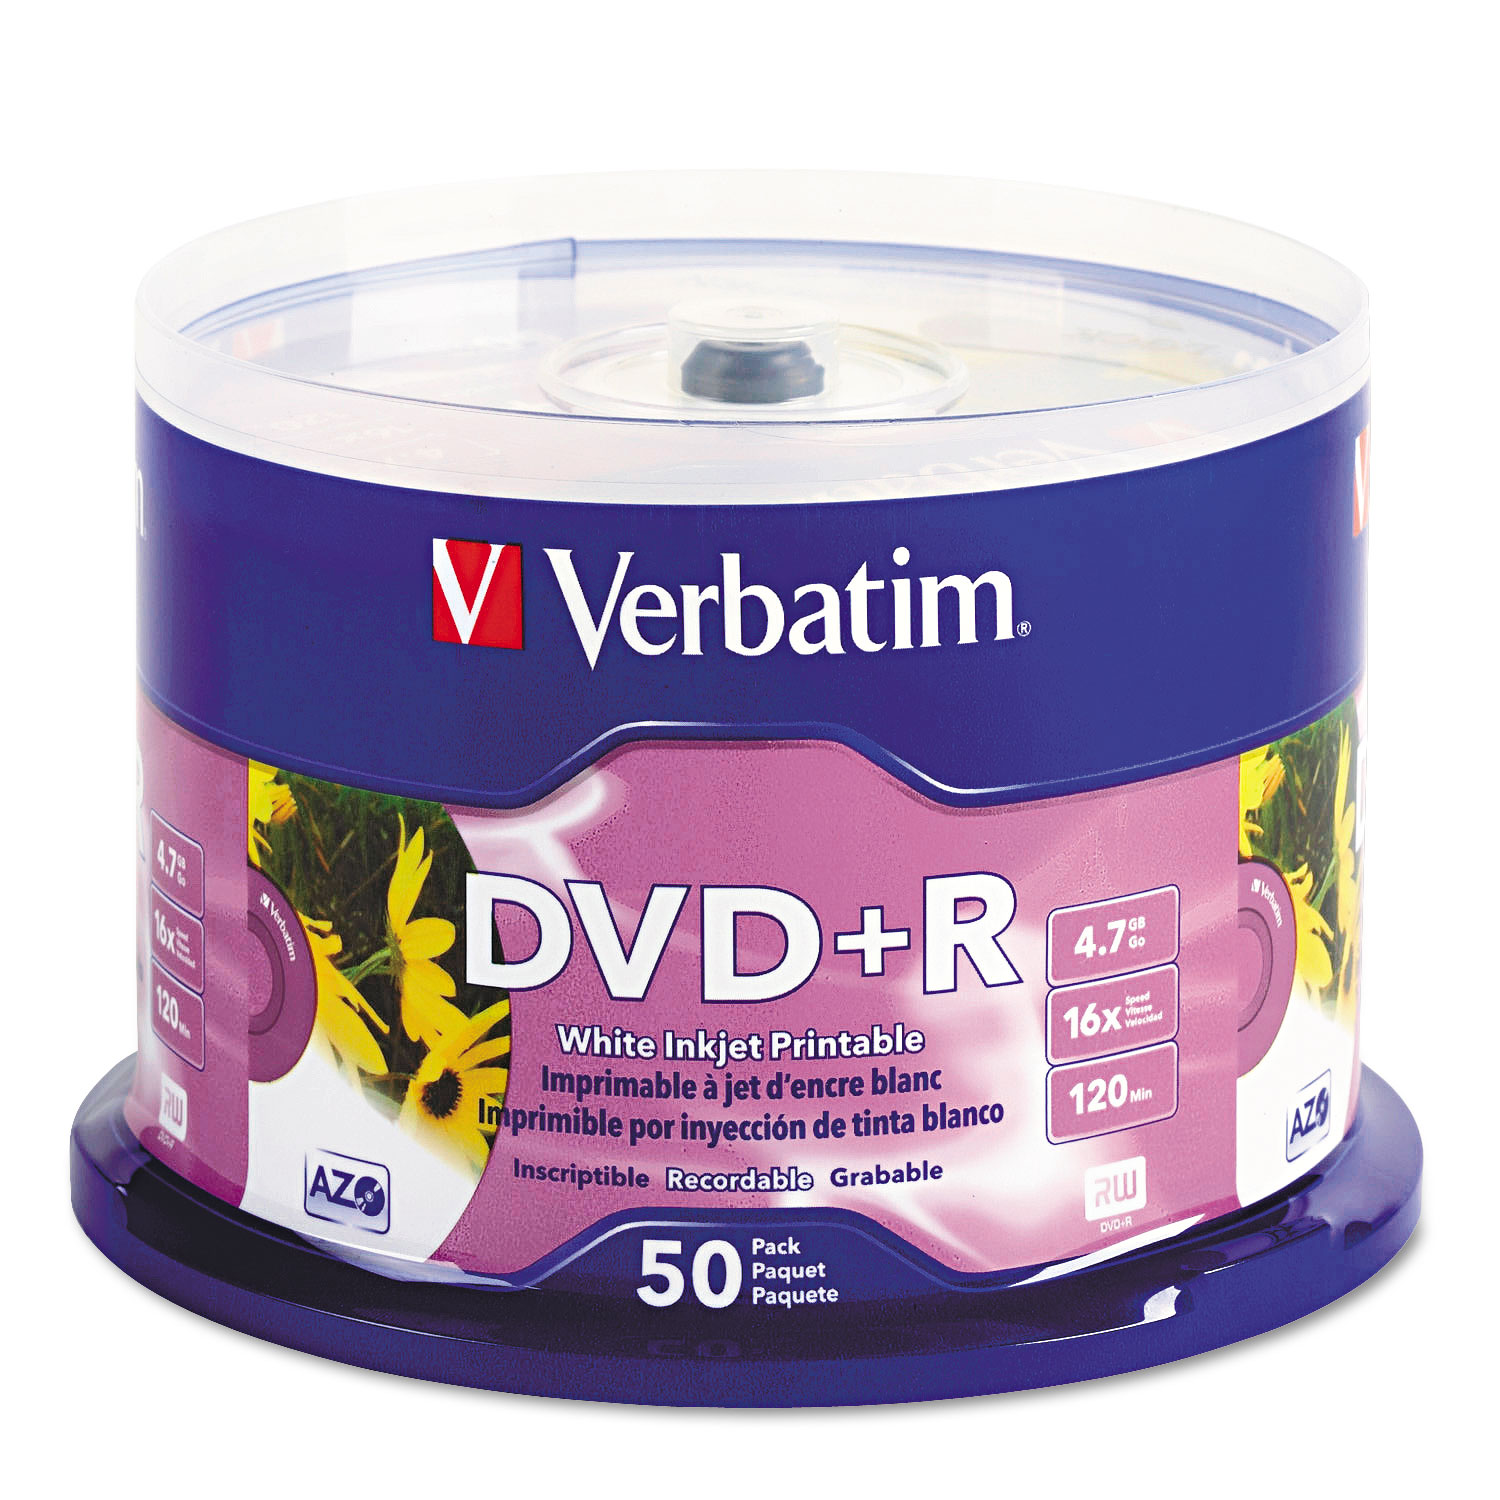 Revered image regarding inkjet printable dvd